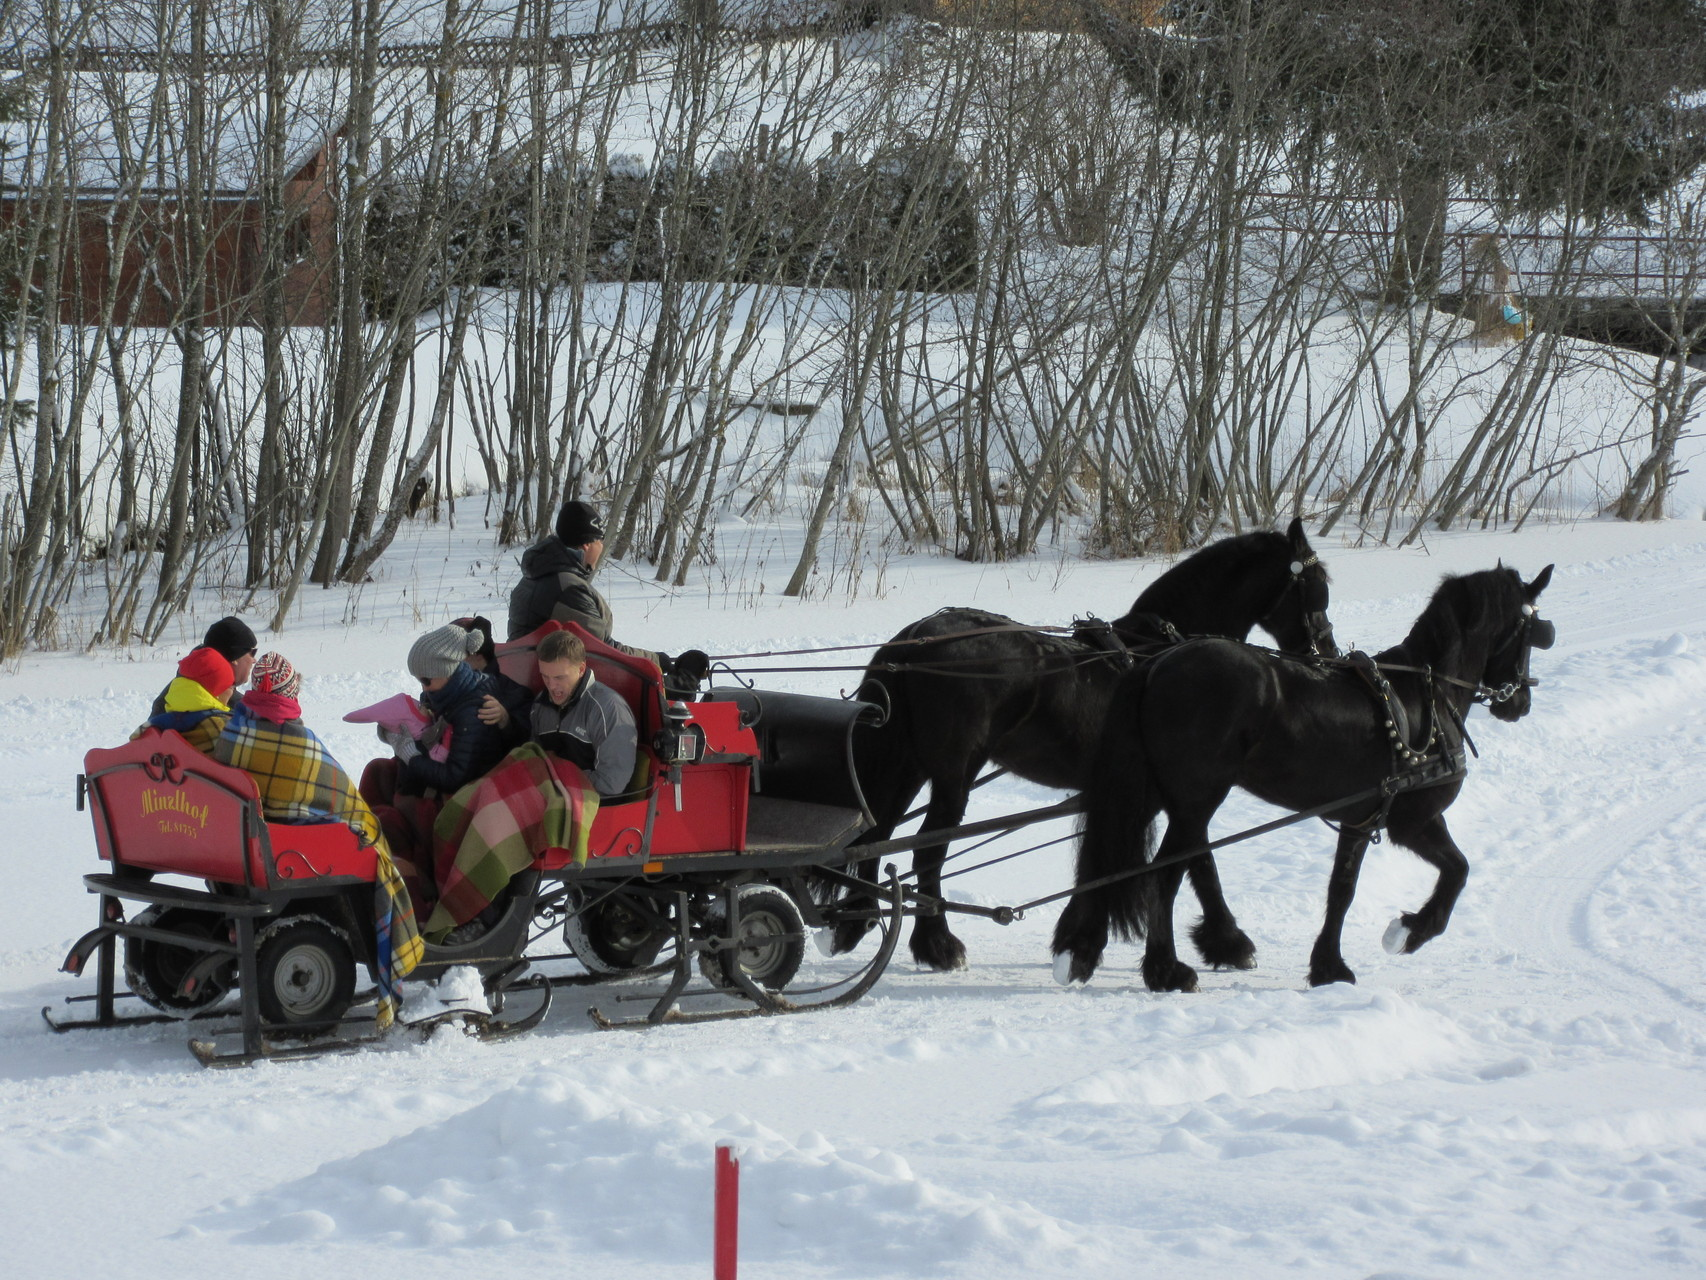 Horse sleigh rides pass next to the house in winter